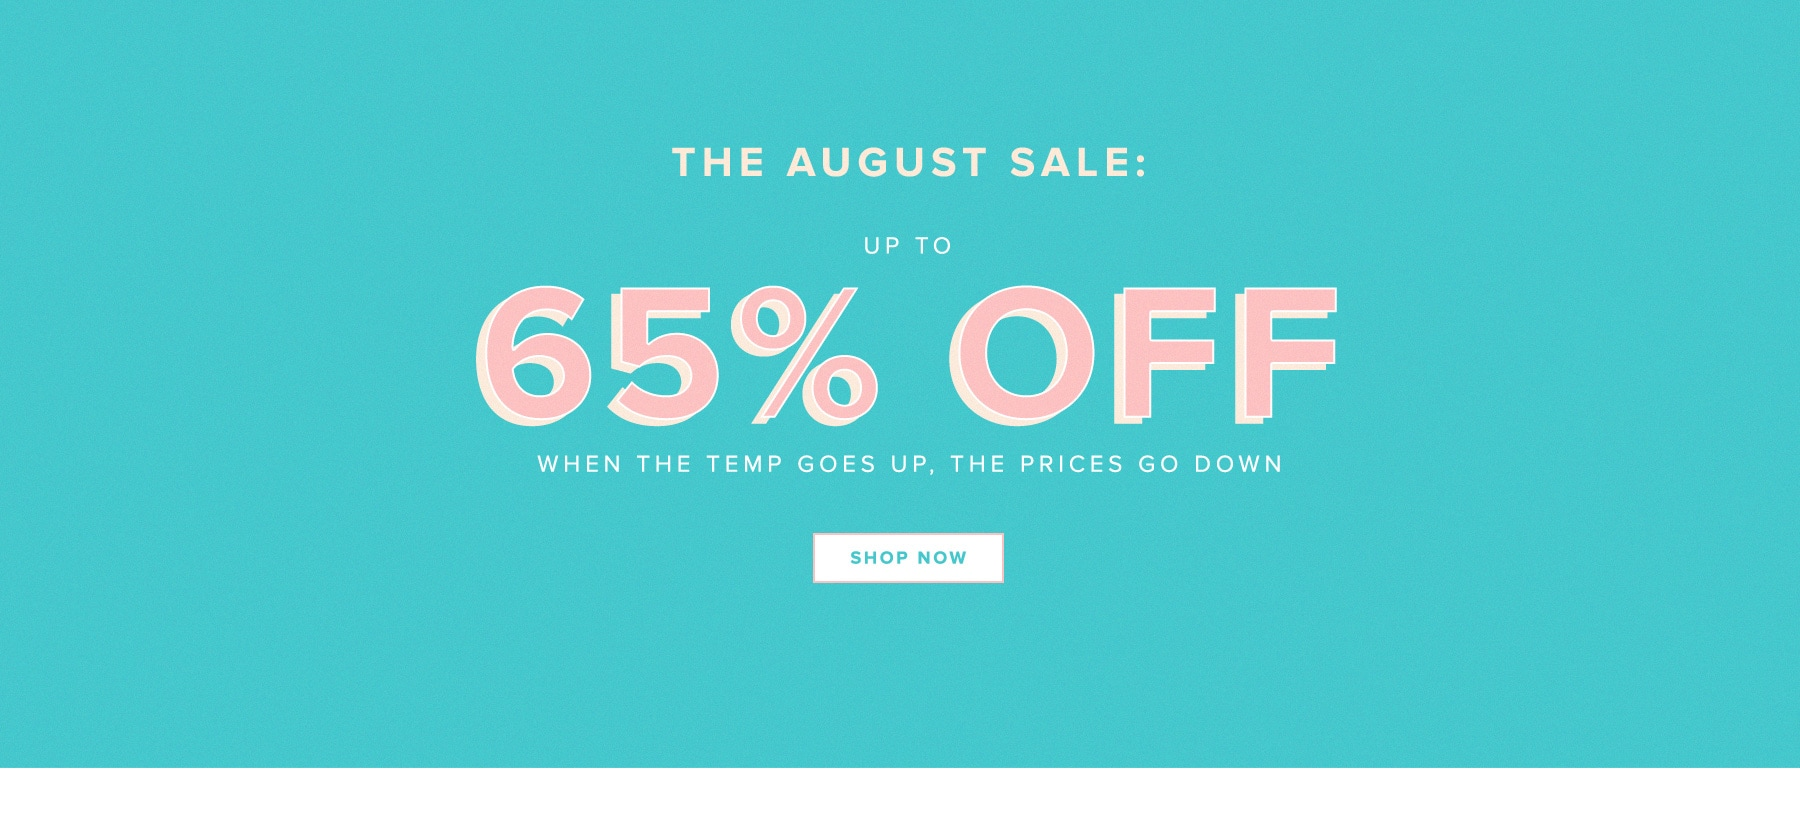 The August Sale: Up to 65% off. When the temp goes up, the prices go down. Shop Now